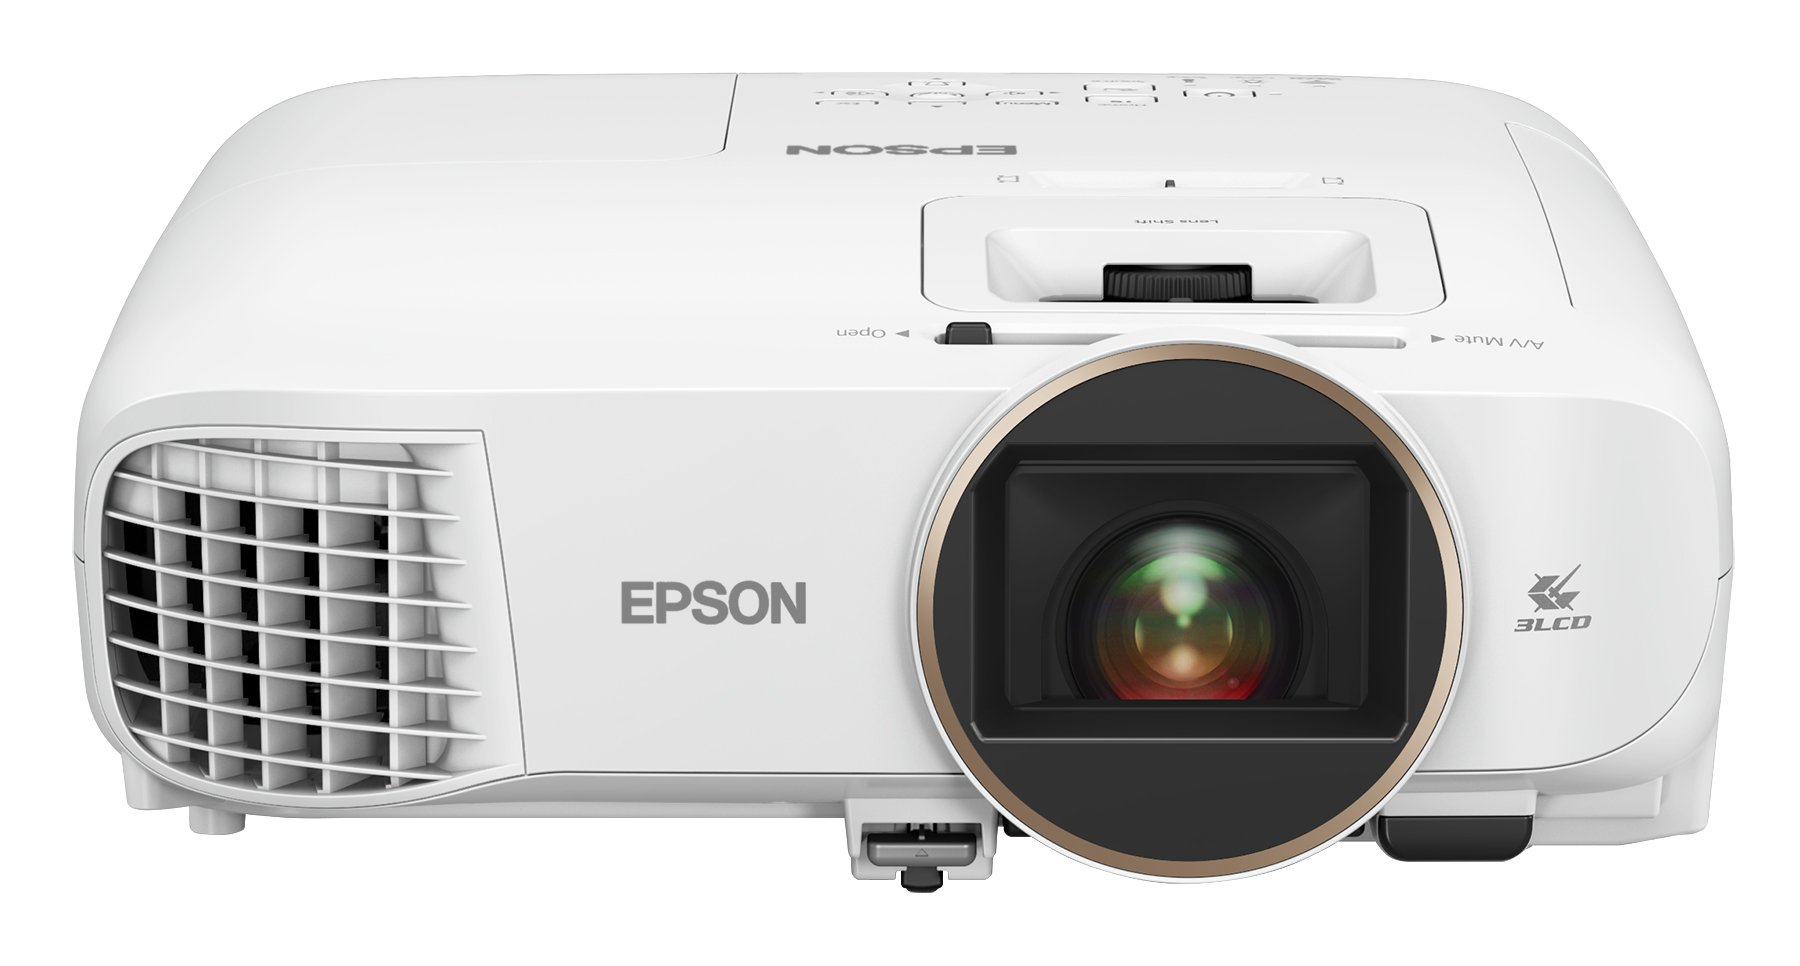 Epson Home Cinema 2150, Wireless, Full HD, 1080p, 2,500 lumens color brightness (color light output), 2,500 lumens white brightness (white light output), 2x HDMI (1 MHL), Miracast, 3LCD projector by Epson (Image #3)